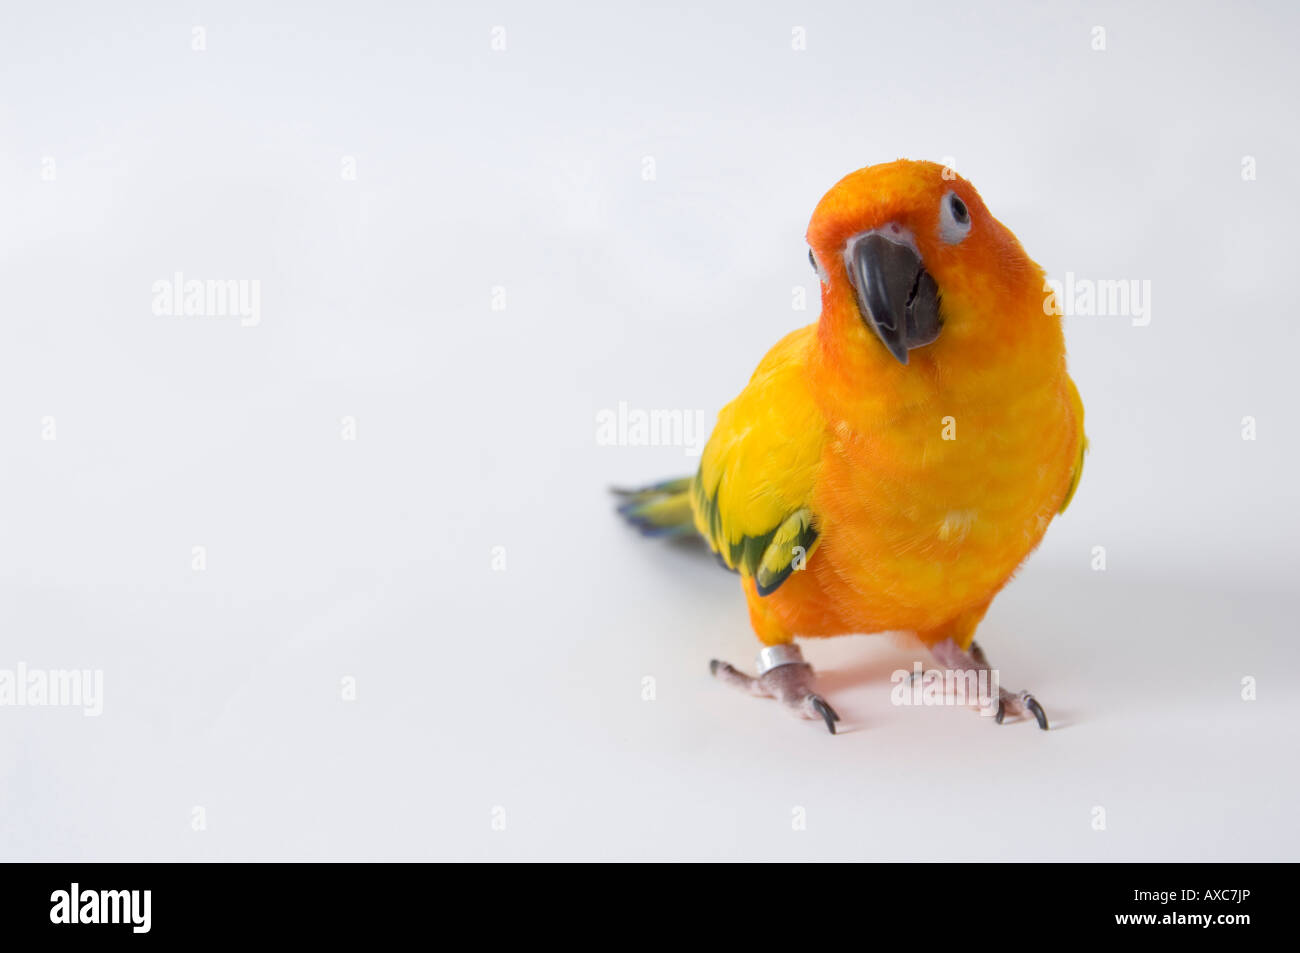 Small parrot - a sun conure stands with head tilted slightly, appearing curious, against white background. - Stock Image